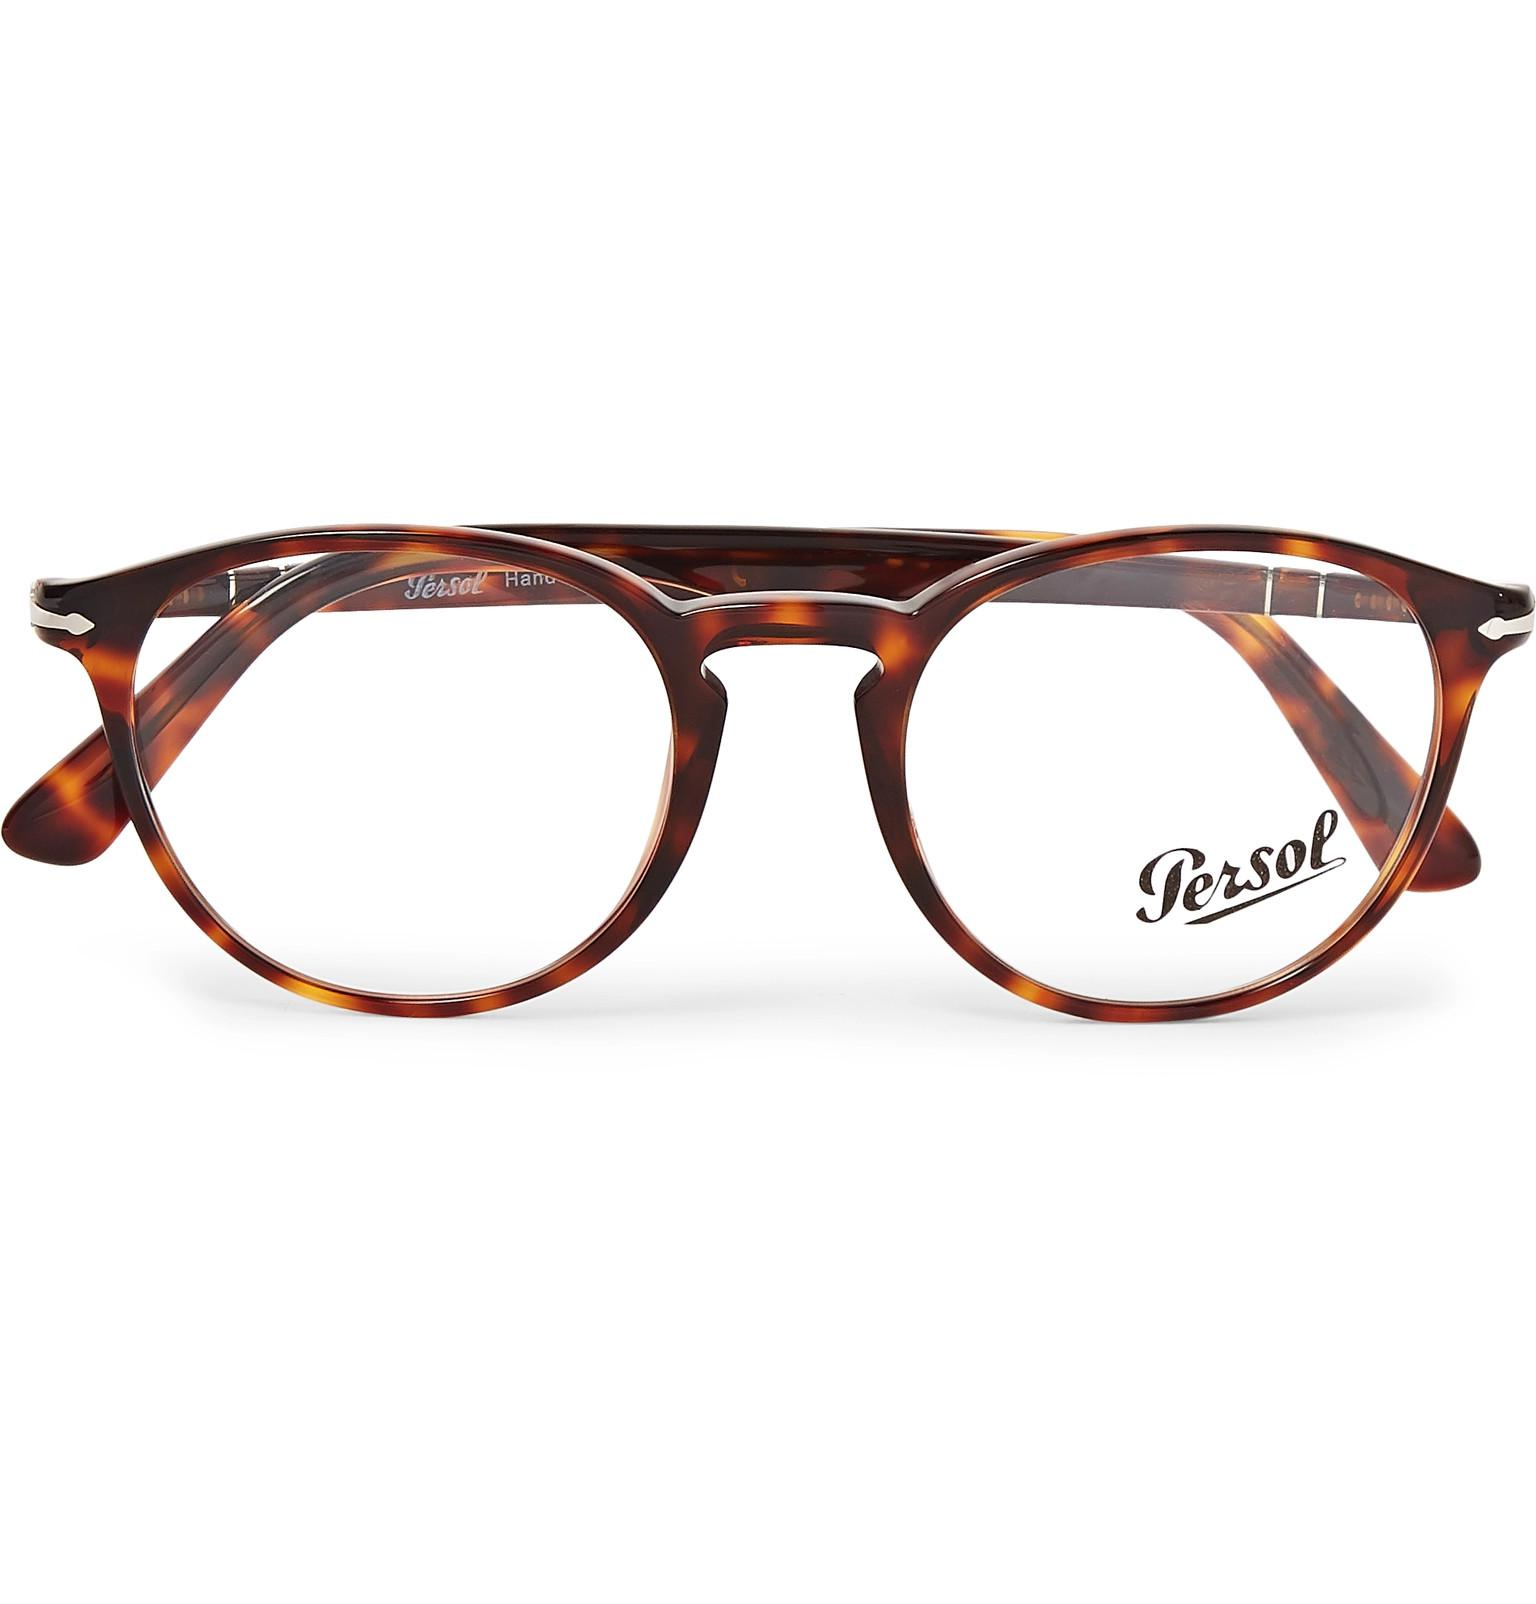 83d1391f18 Lyst - Persol Round-frame Tortoiseshell Acetate Optical Glasses in ...